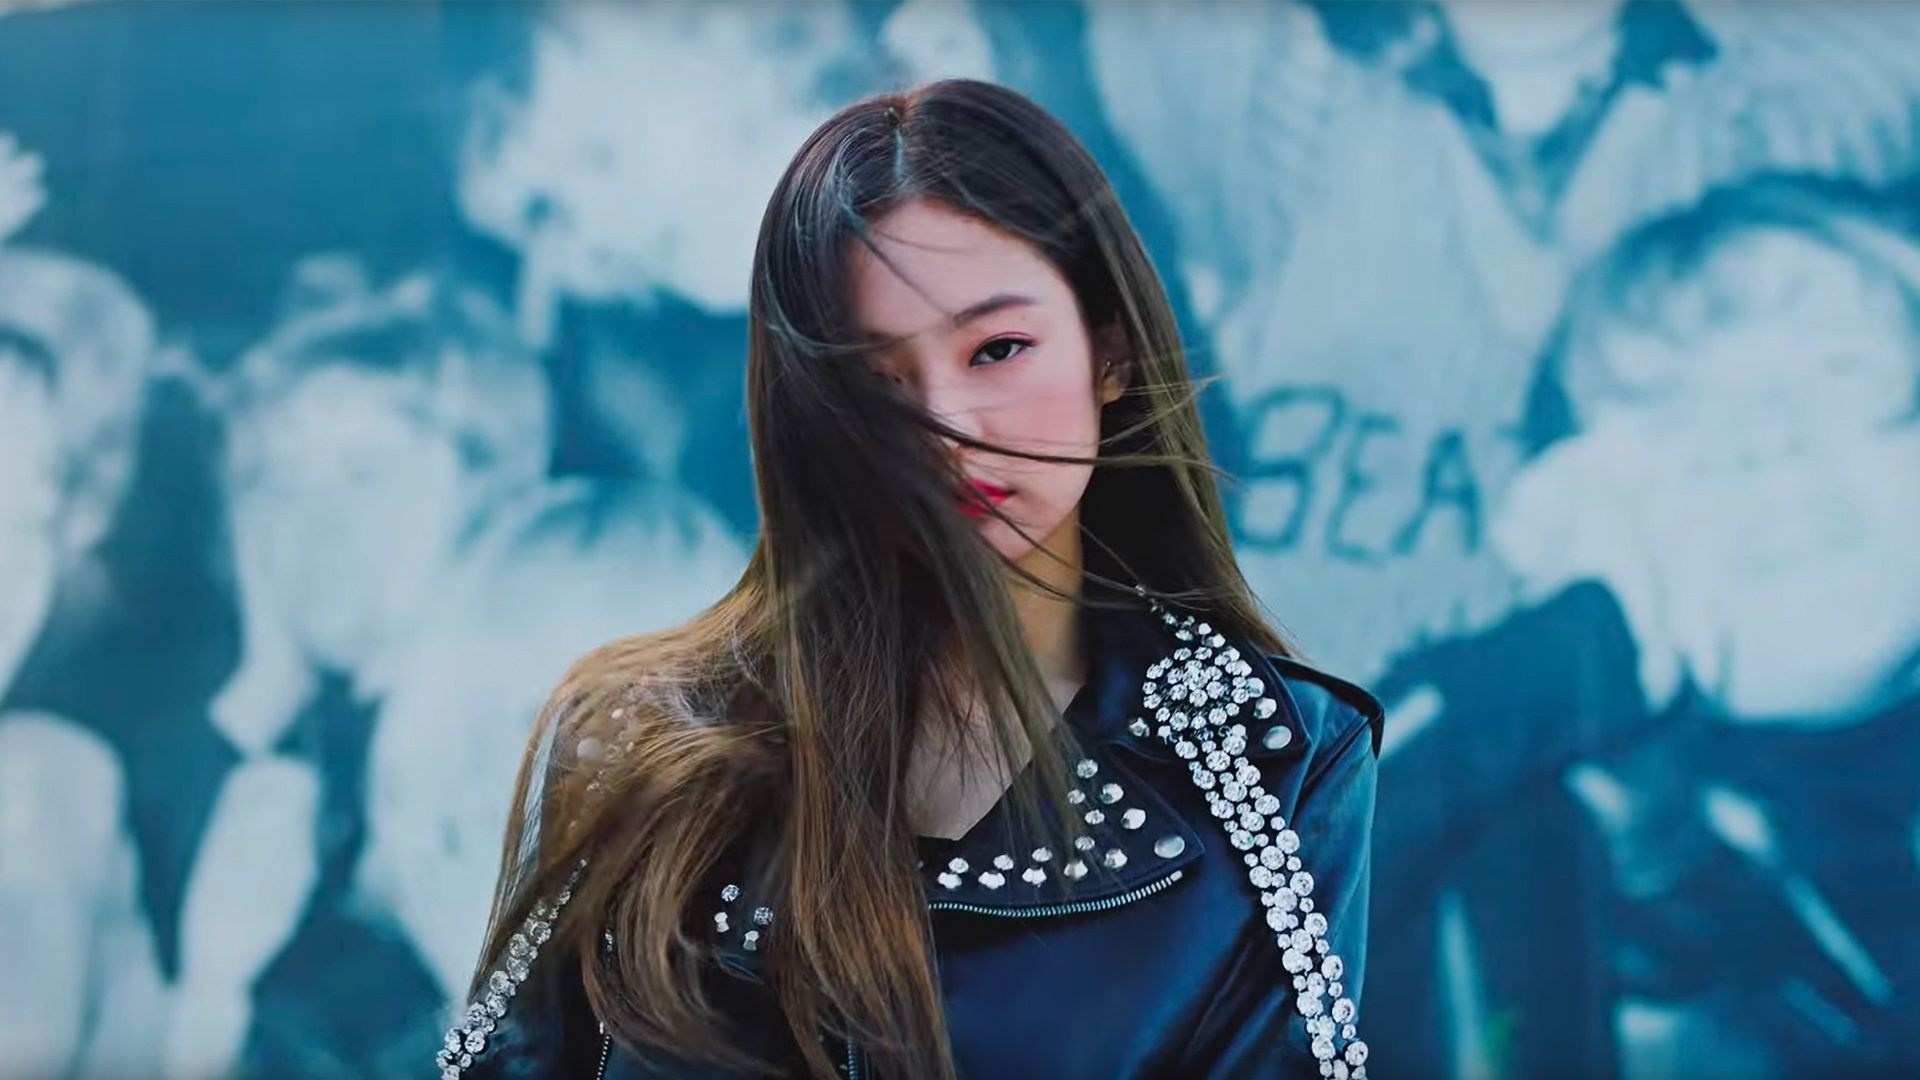 Blackpink S Jennie Makes Her Solo Debut And The Internet Is